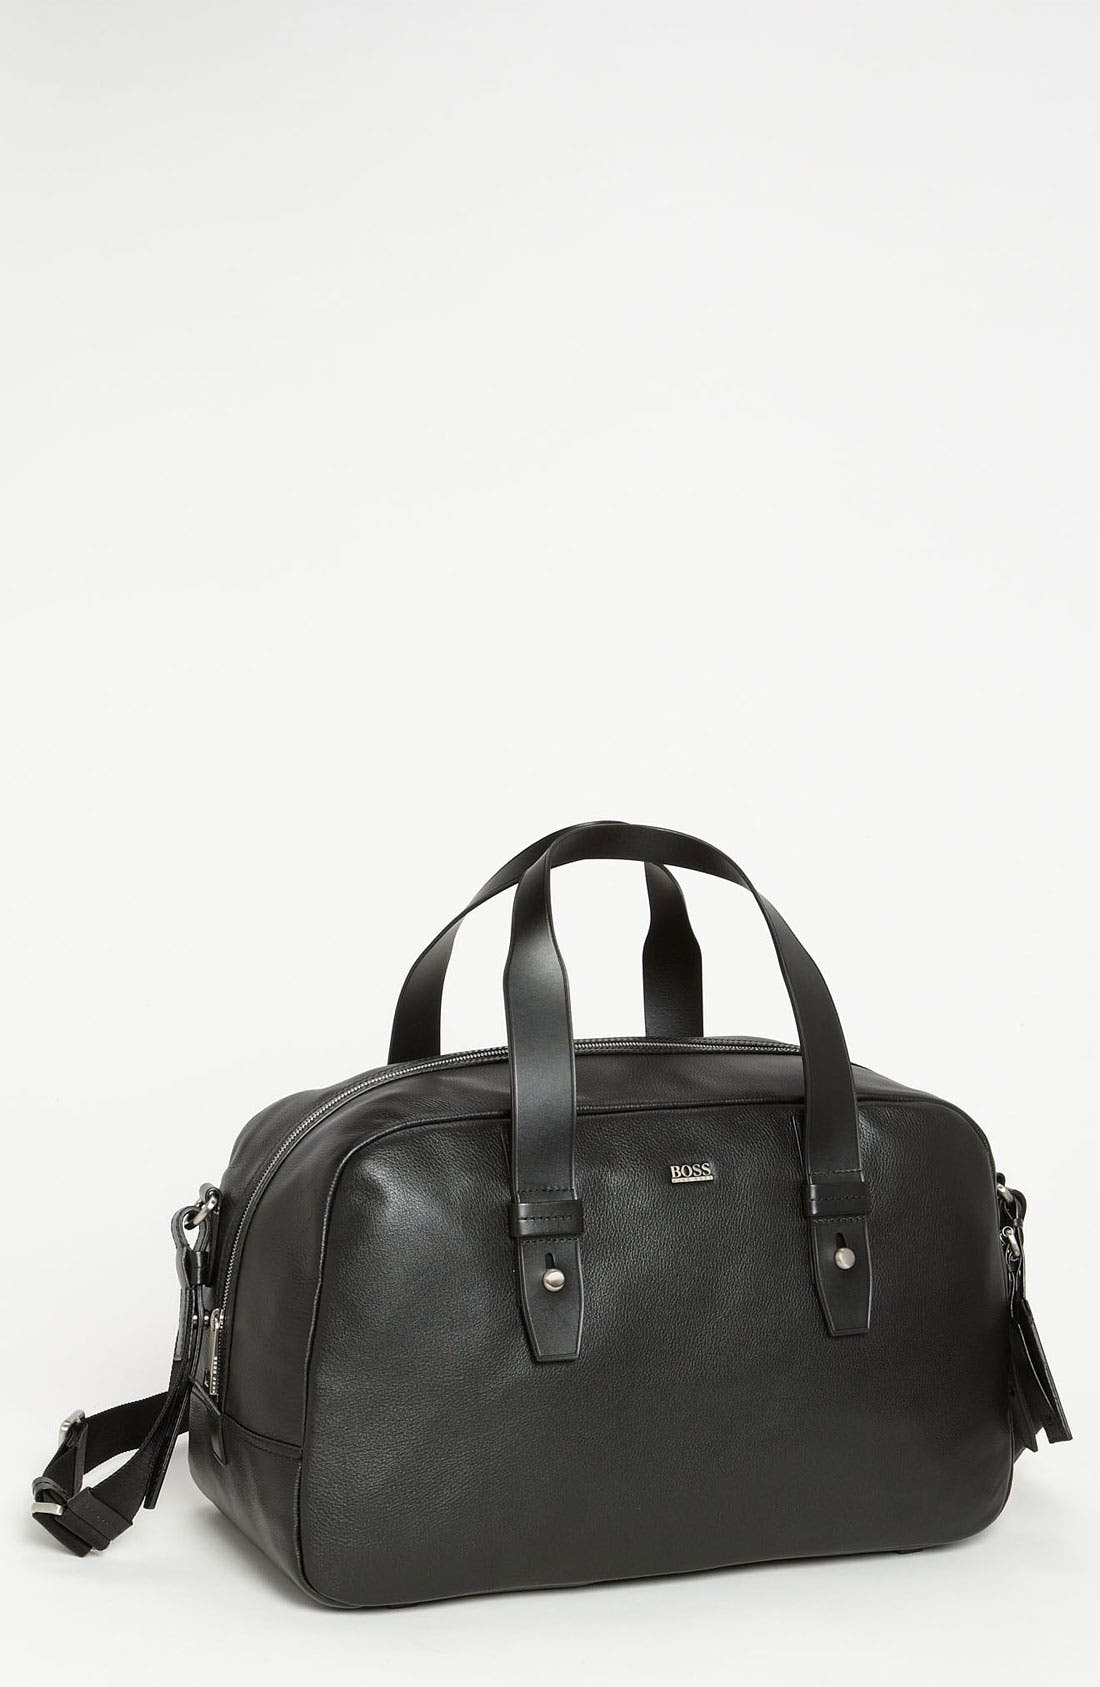 Alternate Image 1 Selected - BOSS Black 'Becor' Duffel Bag